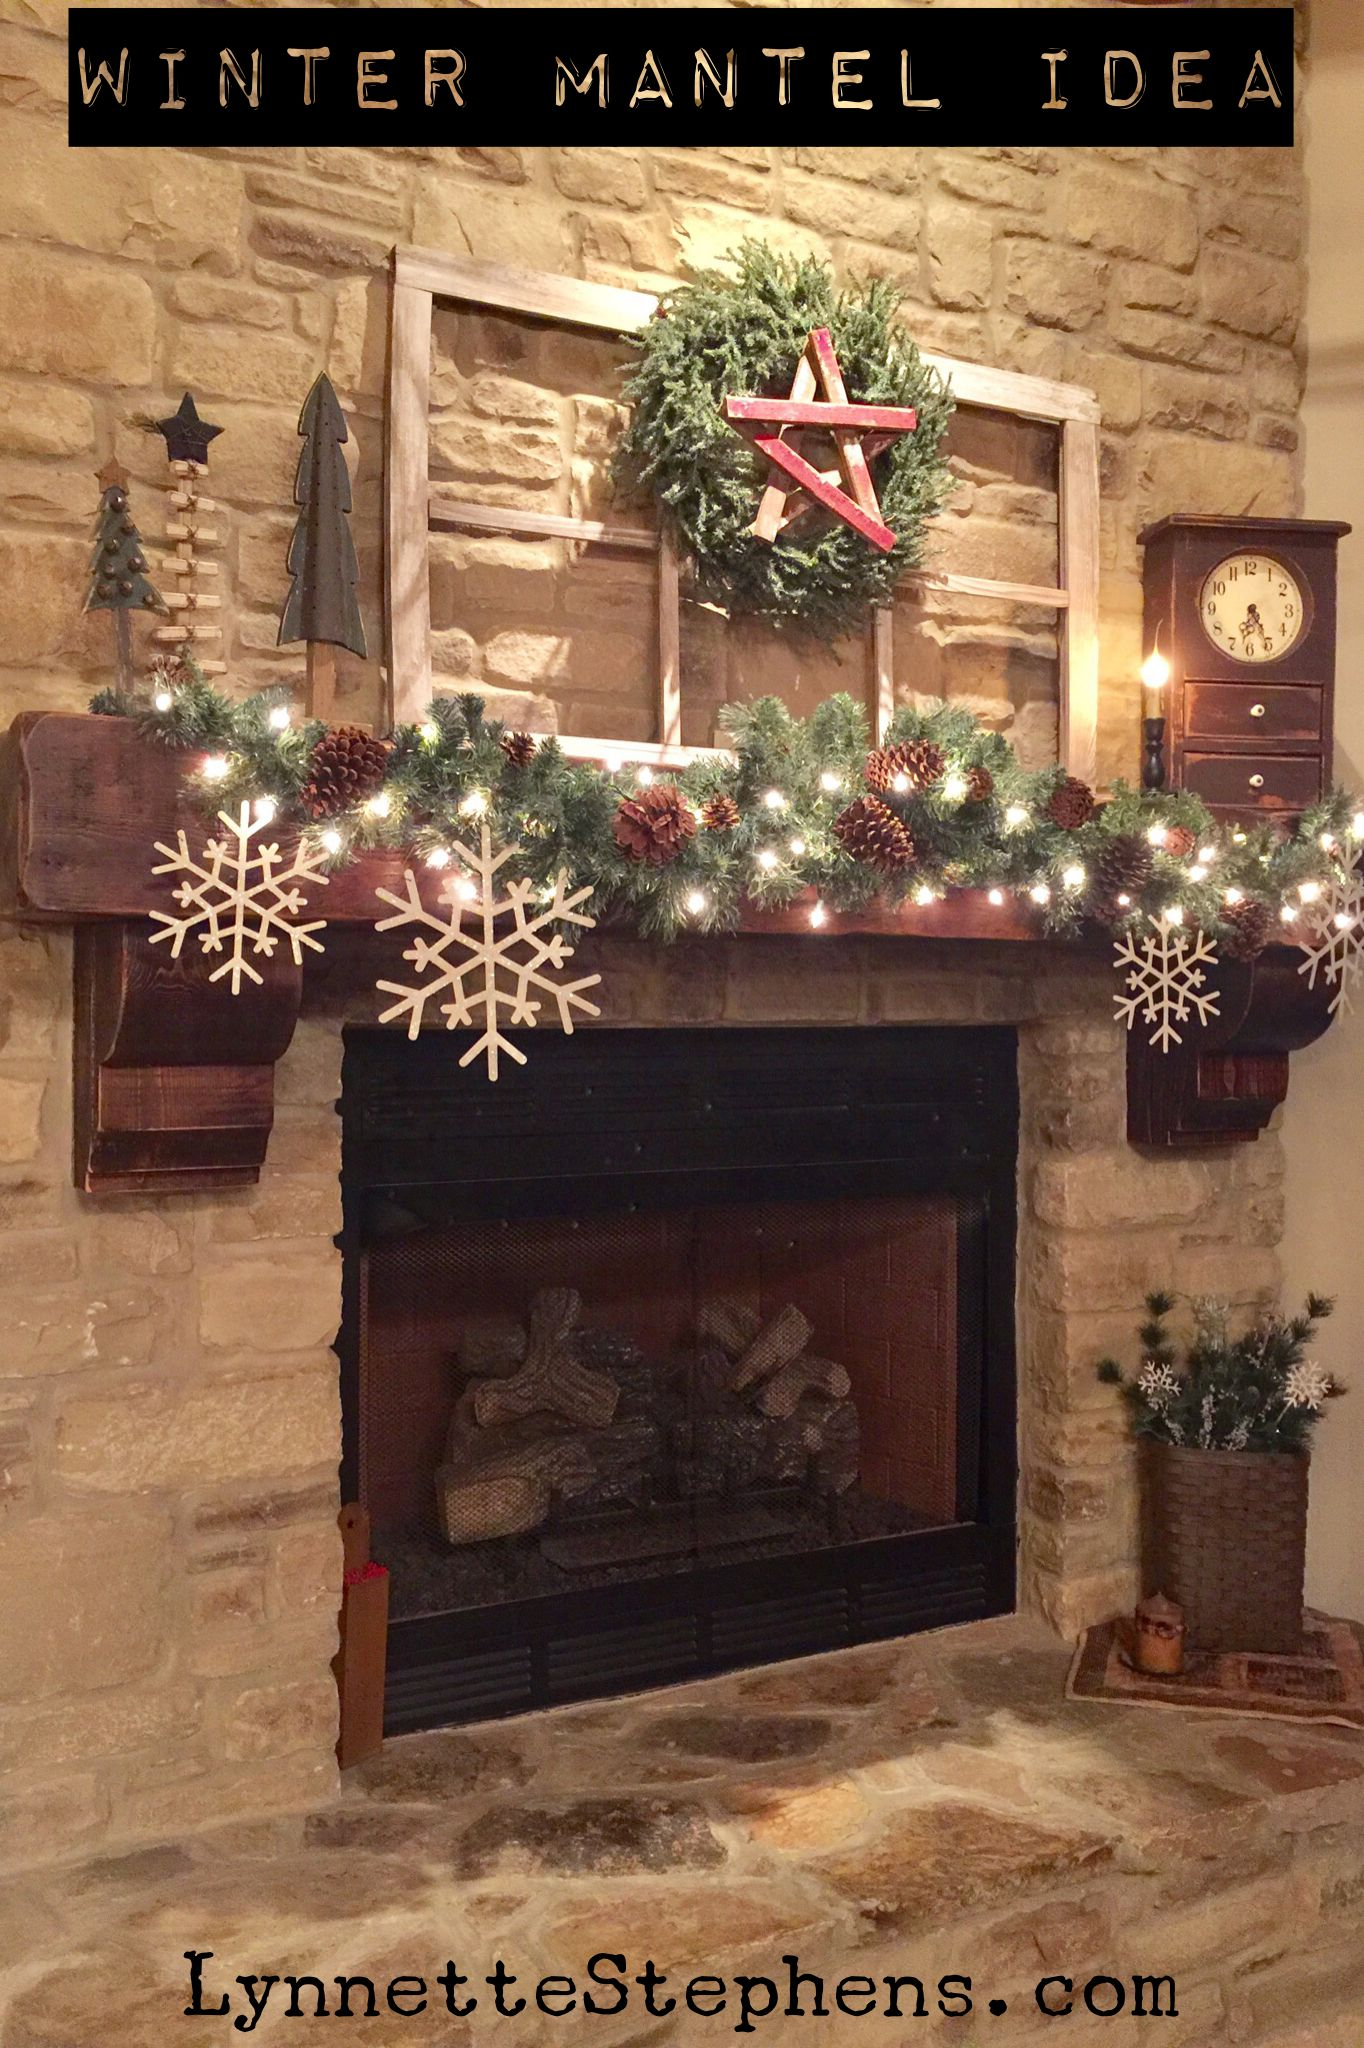 To make our mantel ready for the winter months I simply